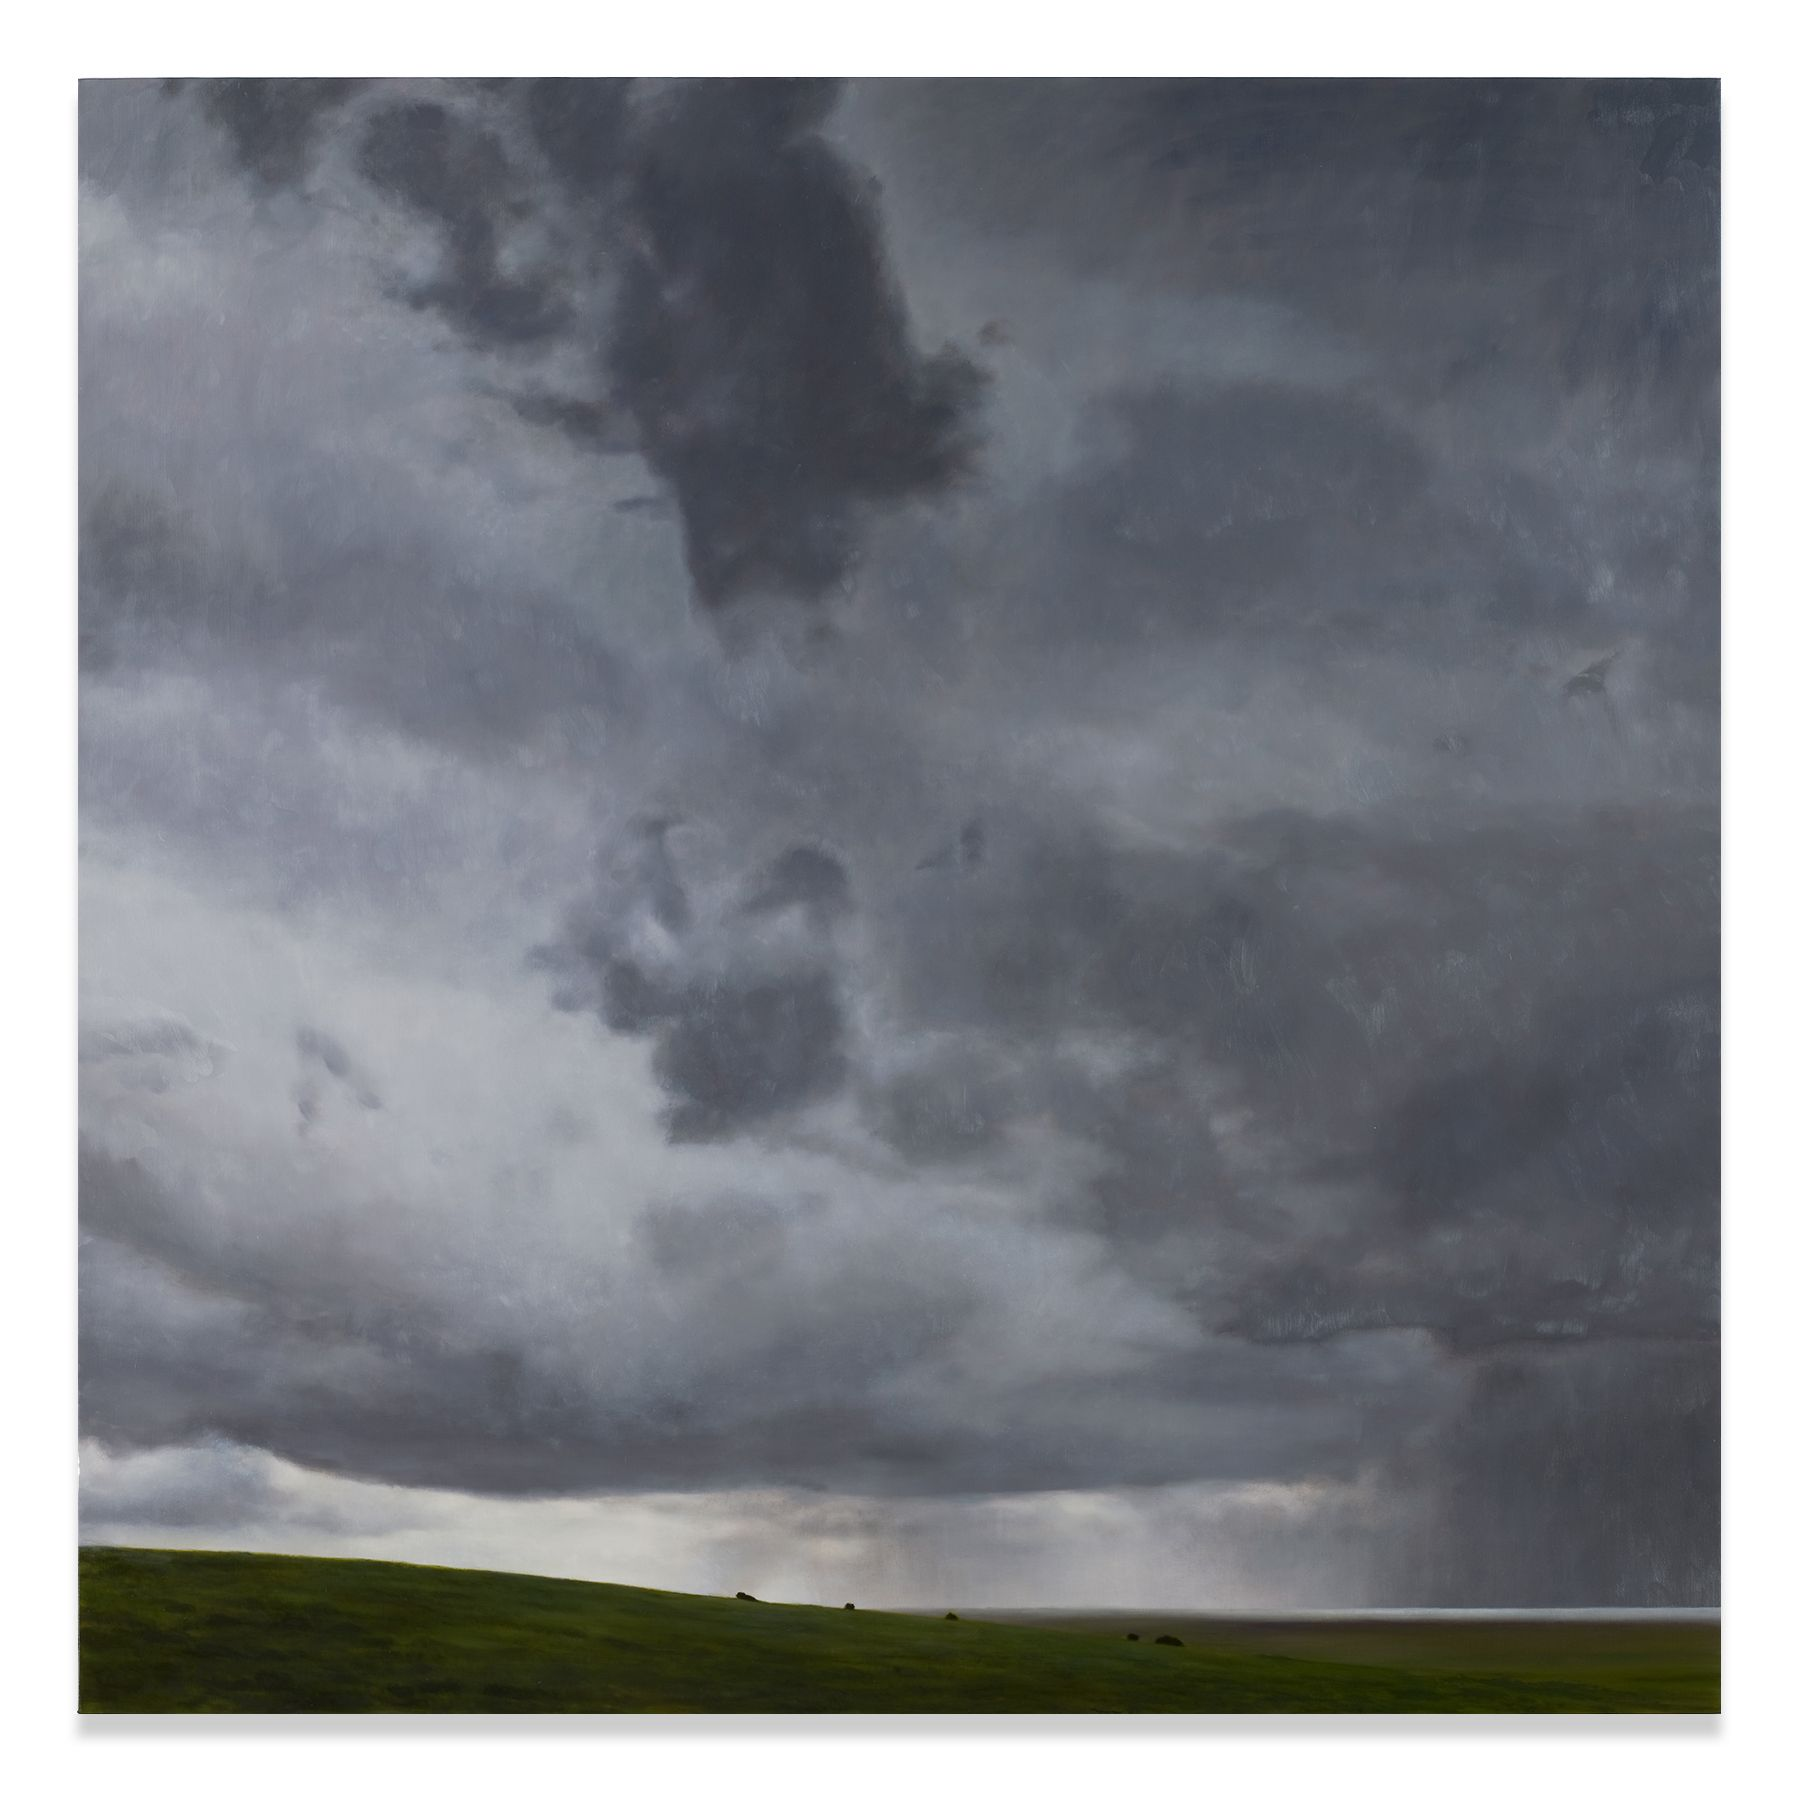 The Horizon, 2008, Oil on linen, 76 x 76.25 inches, 193 x 193.7 cm, MMG#30410